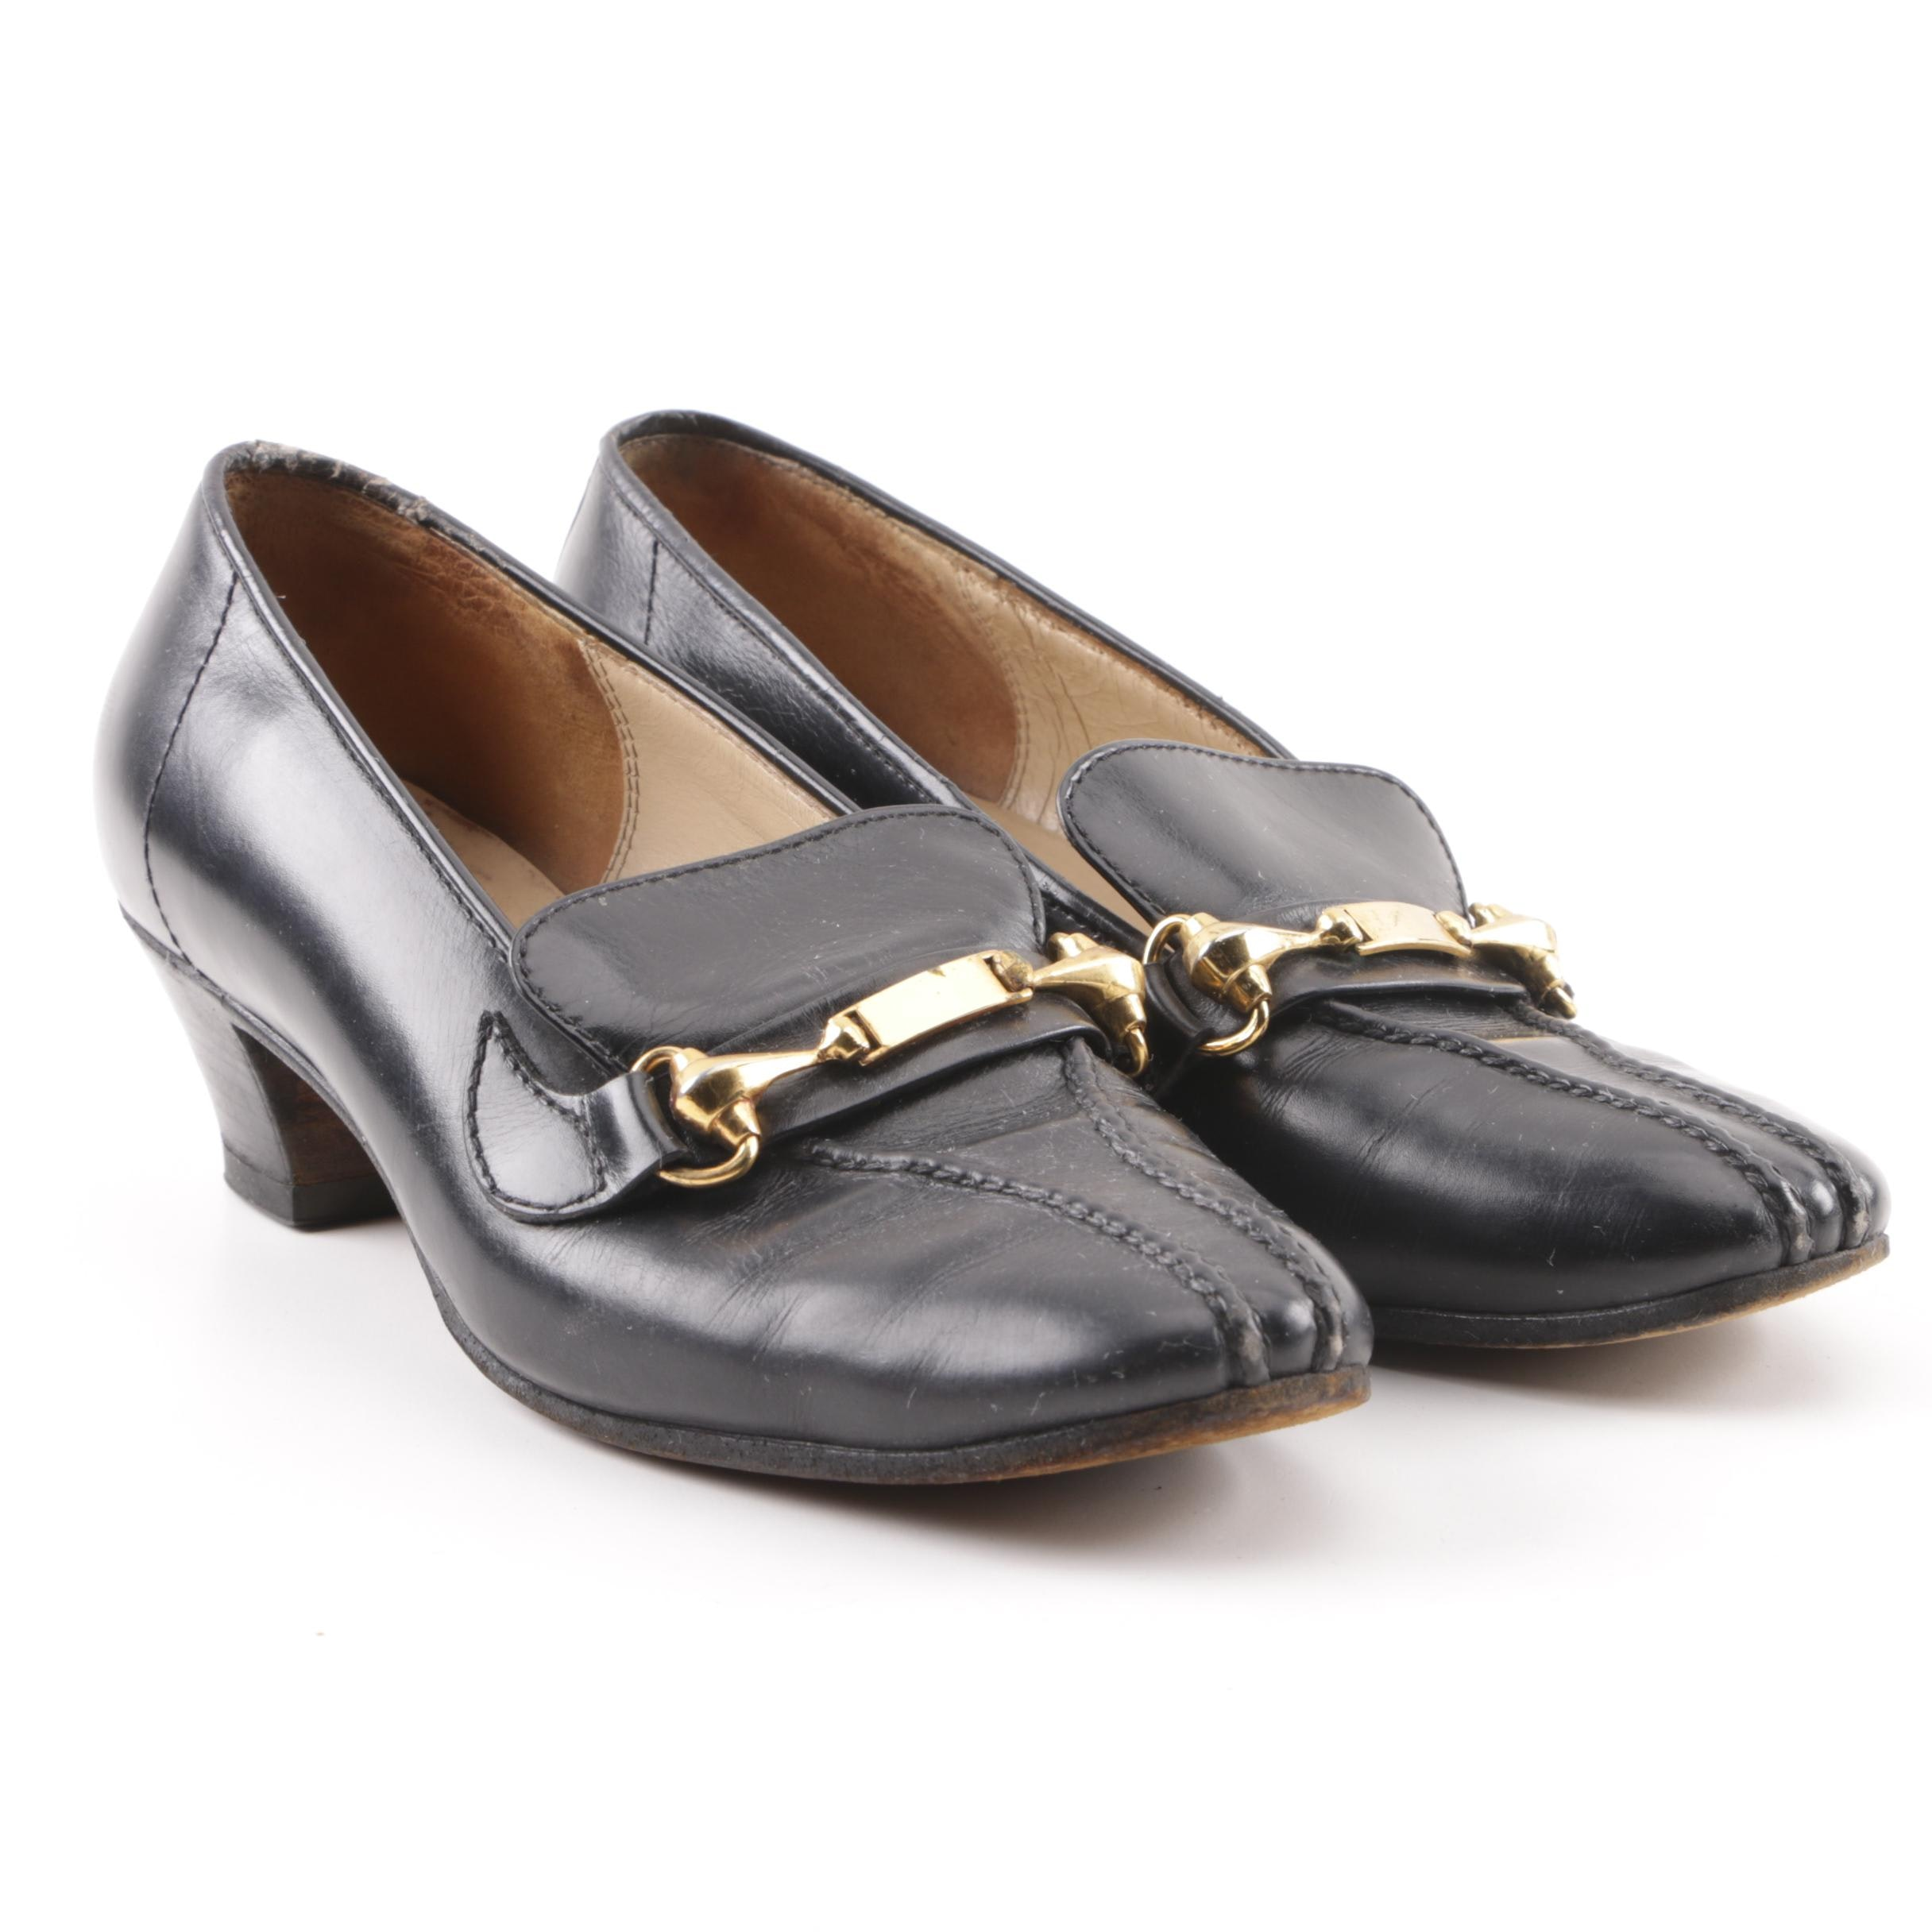 Circa 1960s Vintage Gucci Black Leather Horsebit Low Heel Pumps